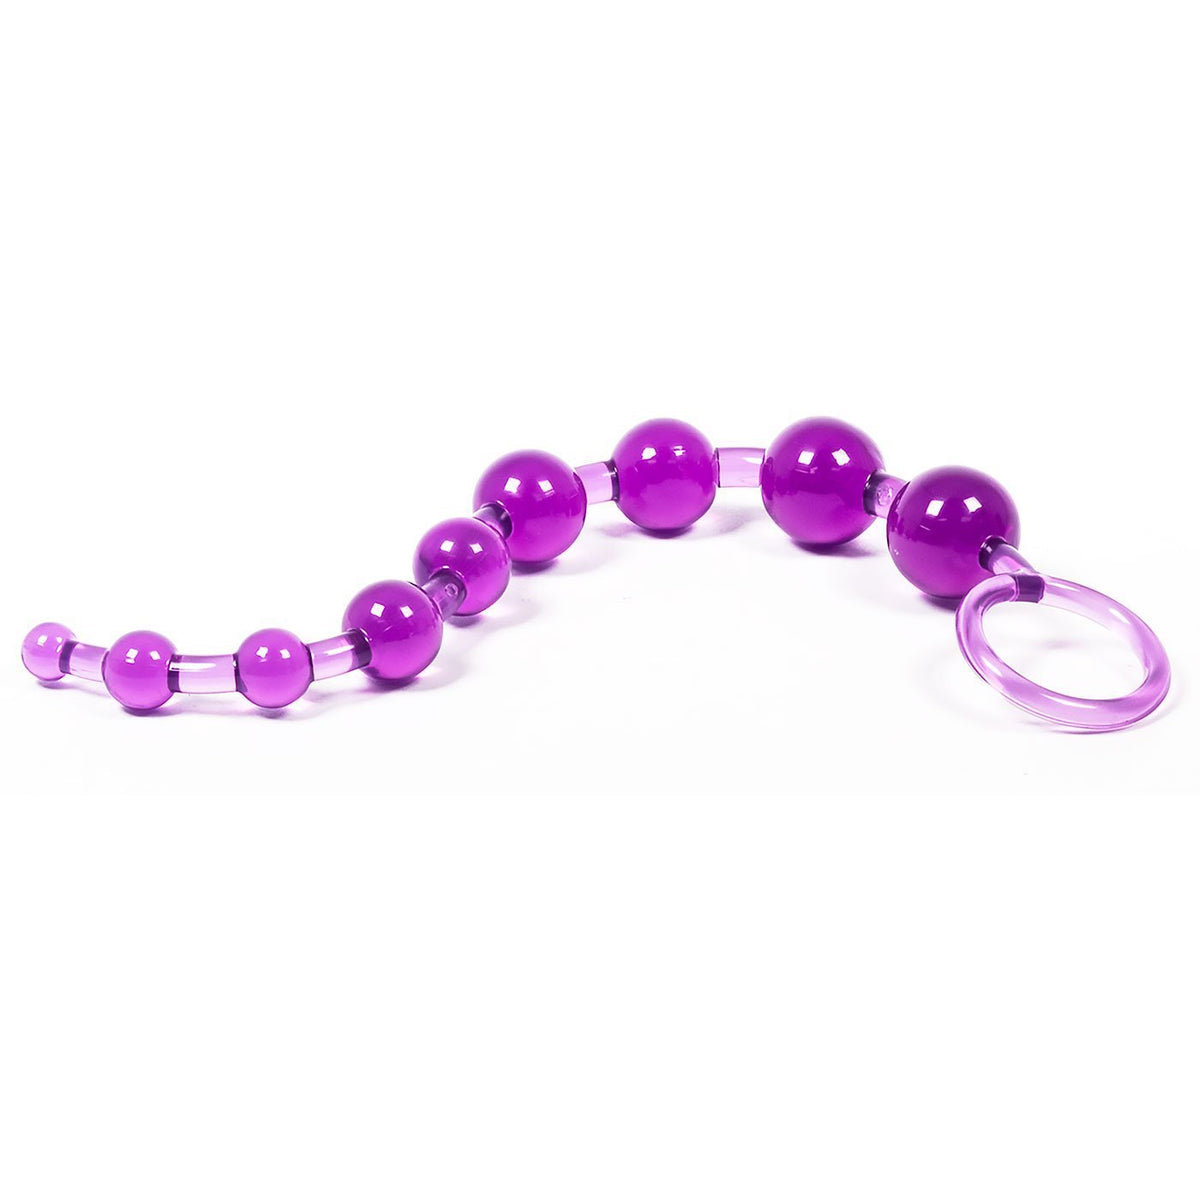 Cloud 9 Classic Graduated Waterproof Anal Beads For Beginners